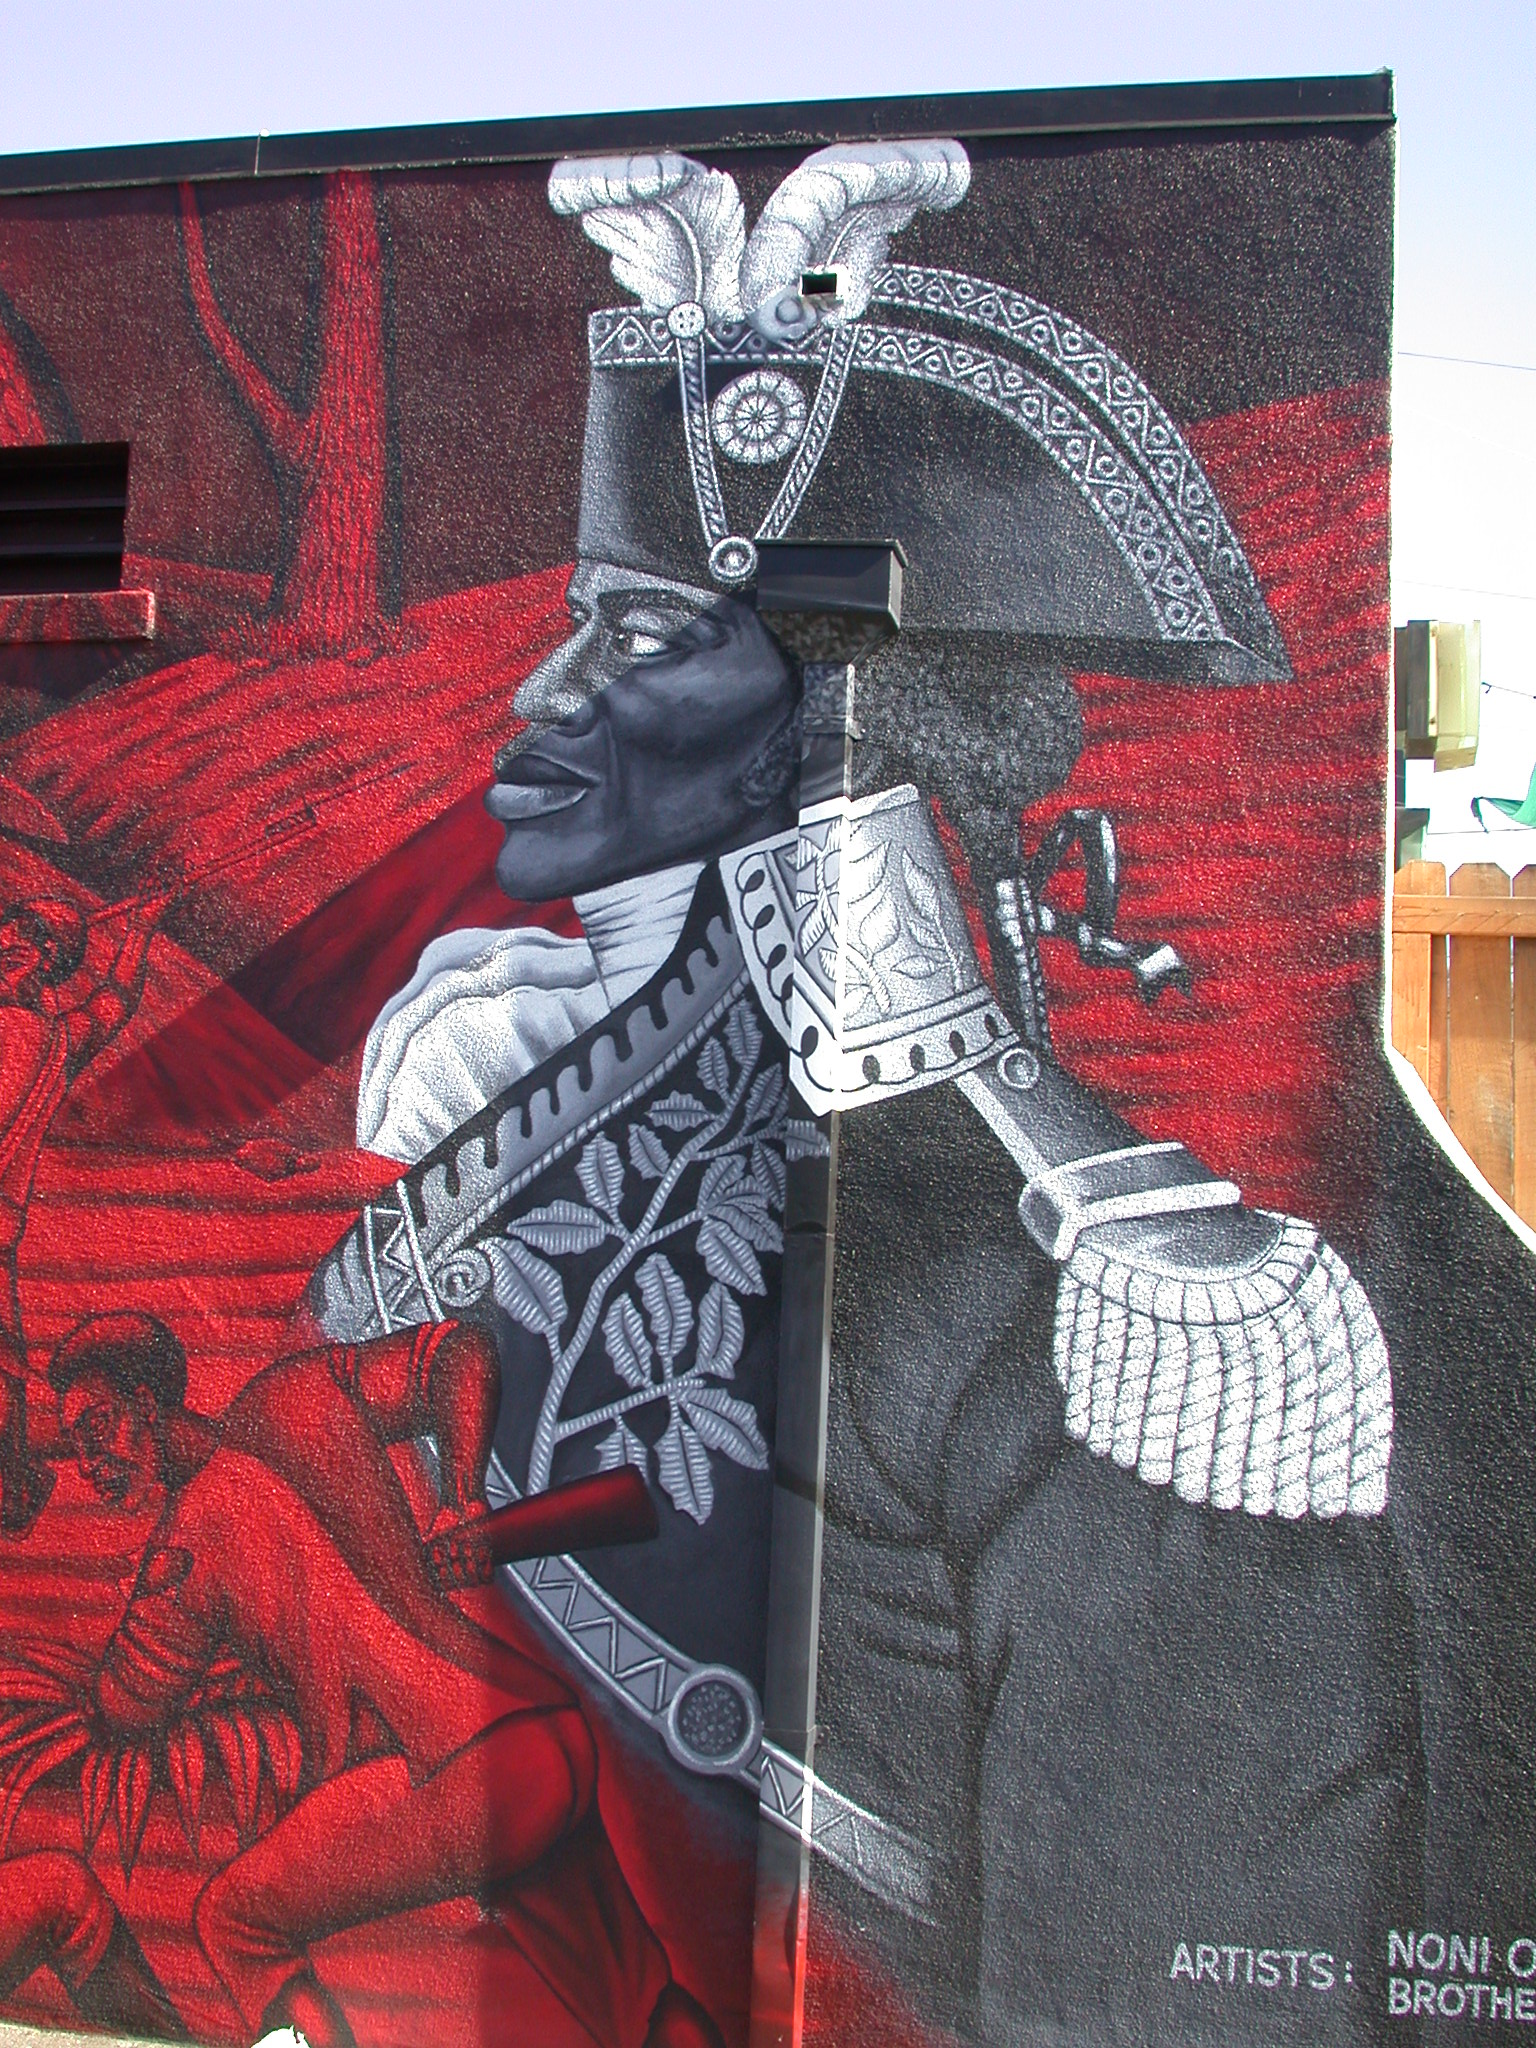 Mural of Jean-Jacques Dessalines, leader of the Haitian slave revolt - by Noni Olabisi in Los Angeles, California